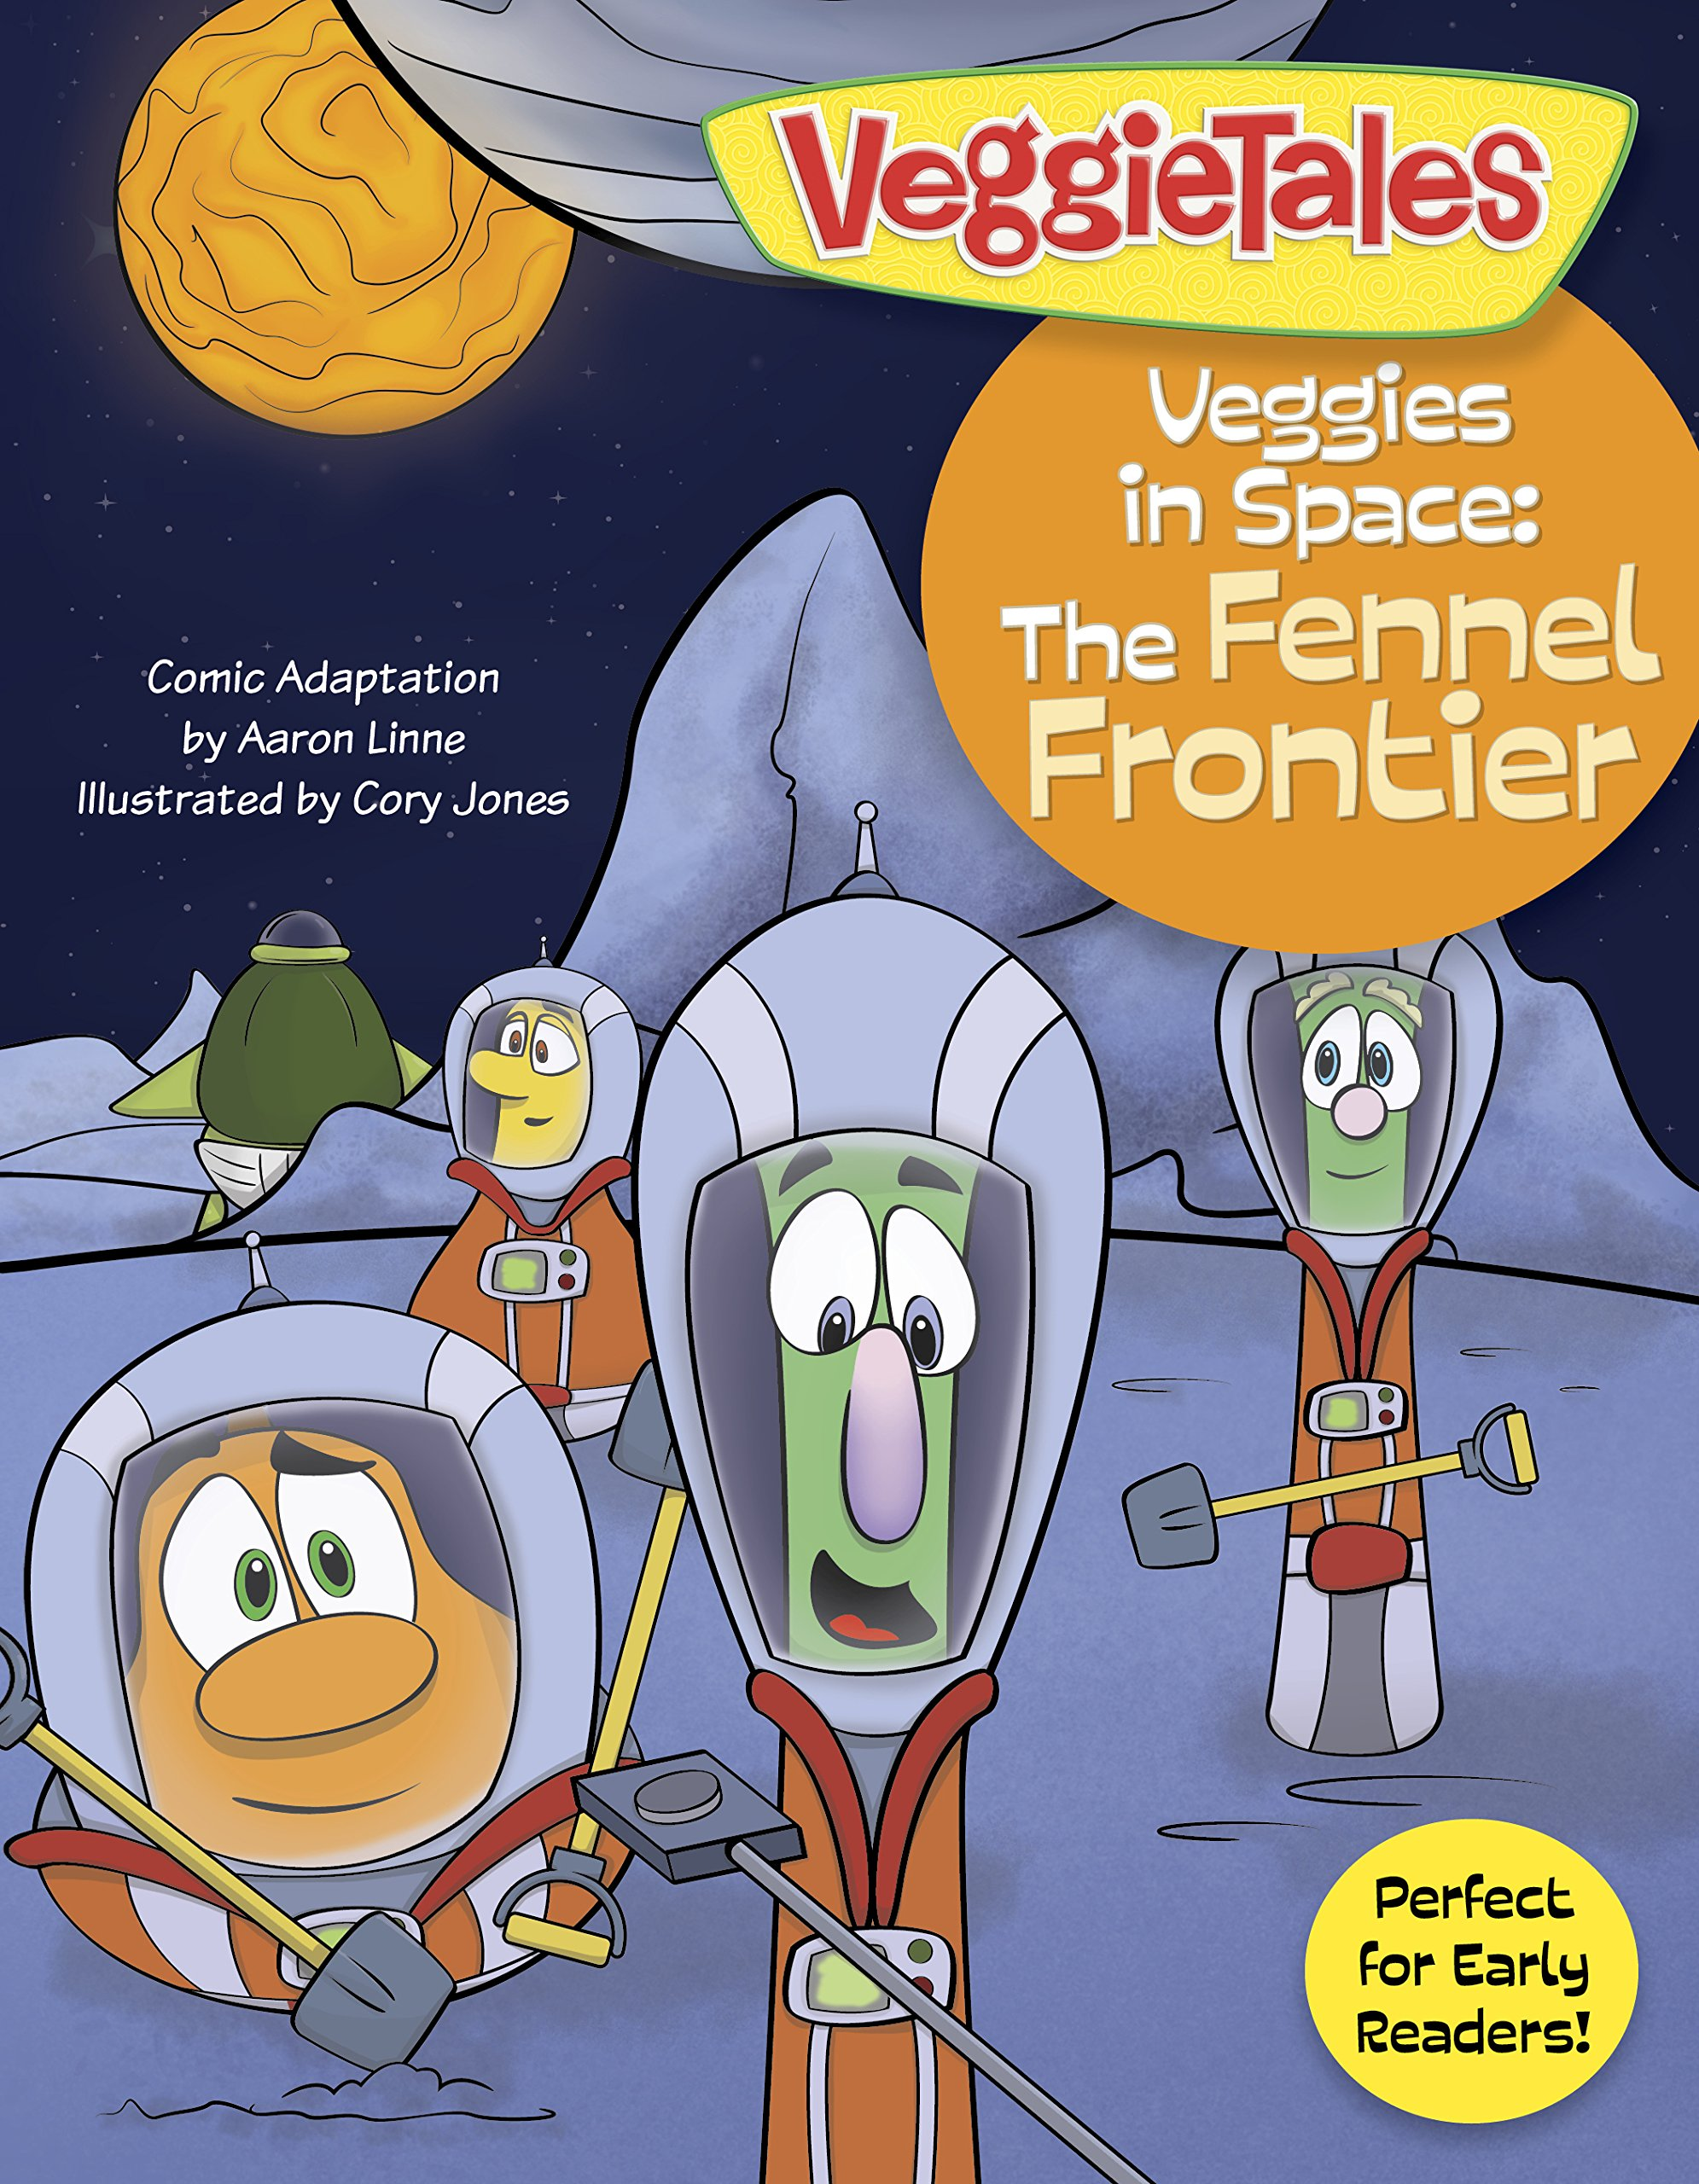 veggies-in-space-the-fennel-frontier-veggietales